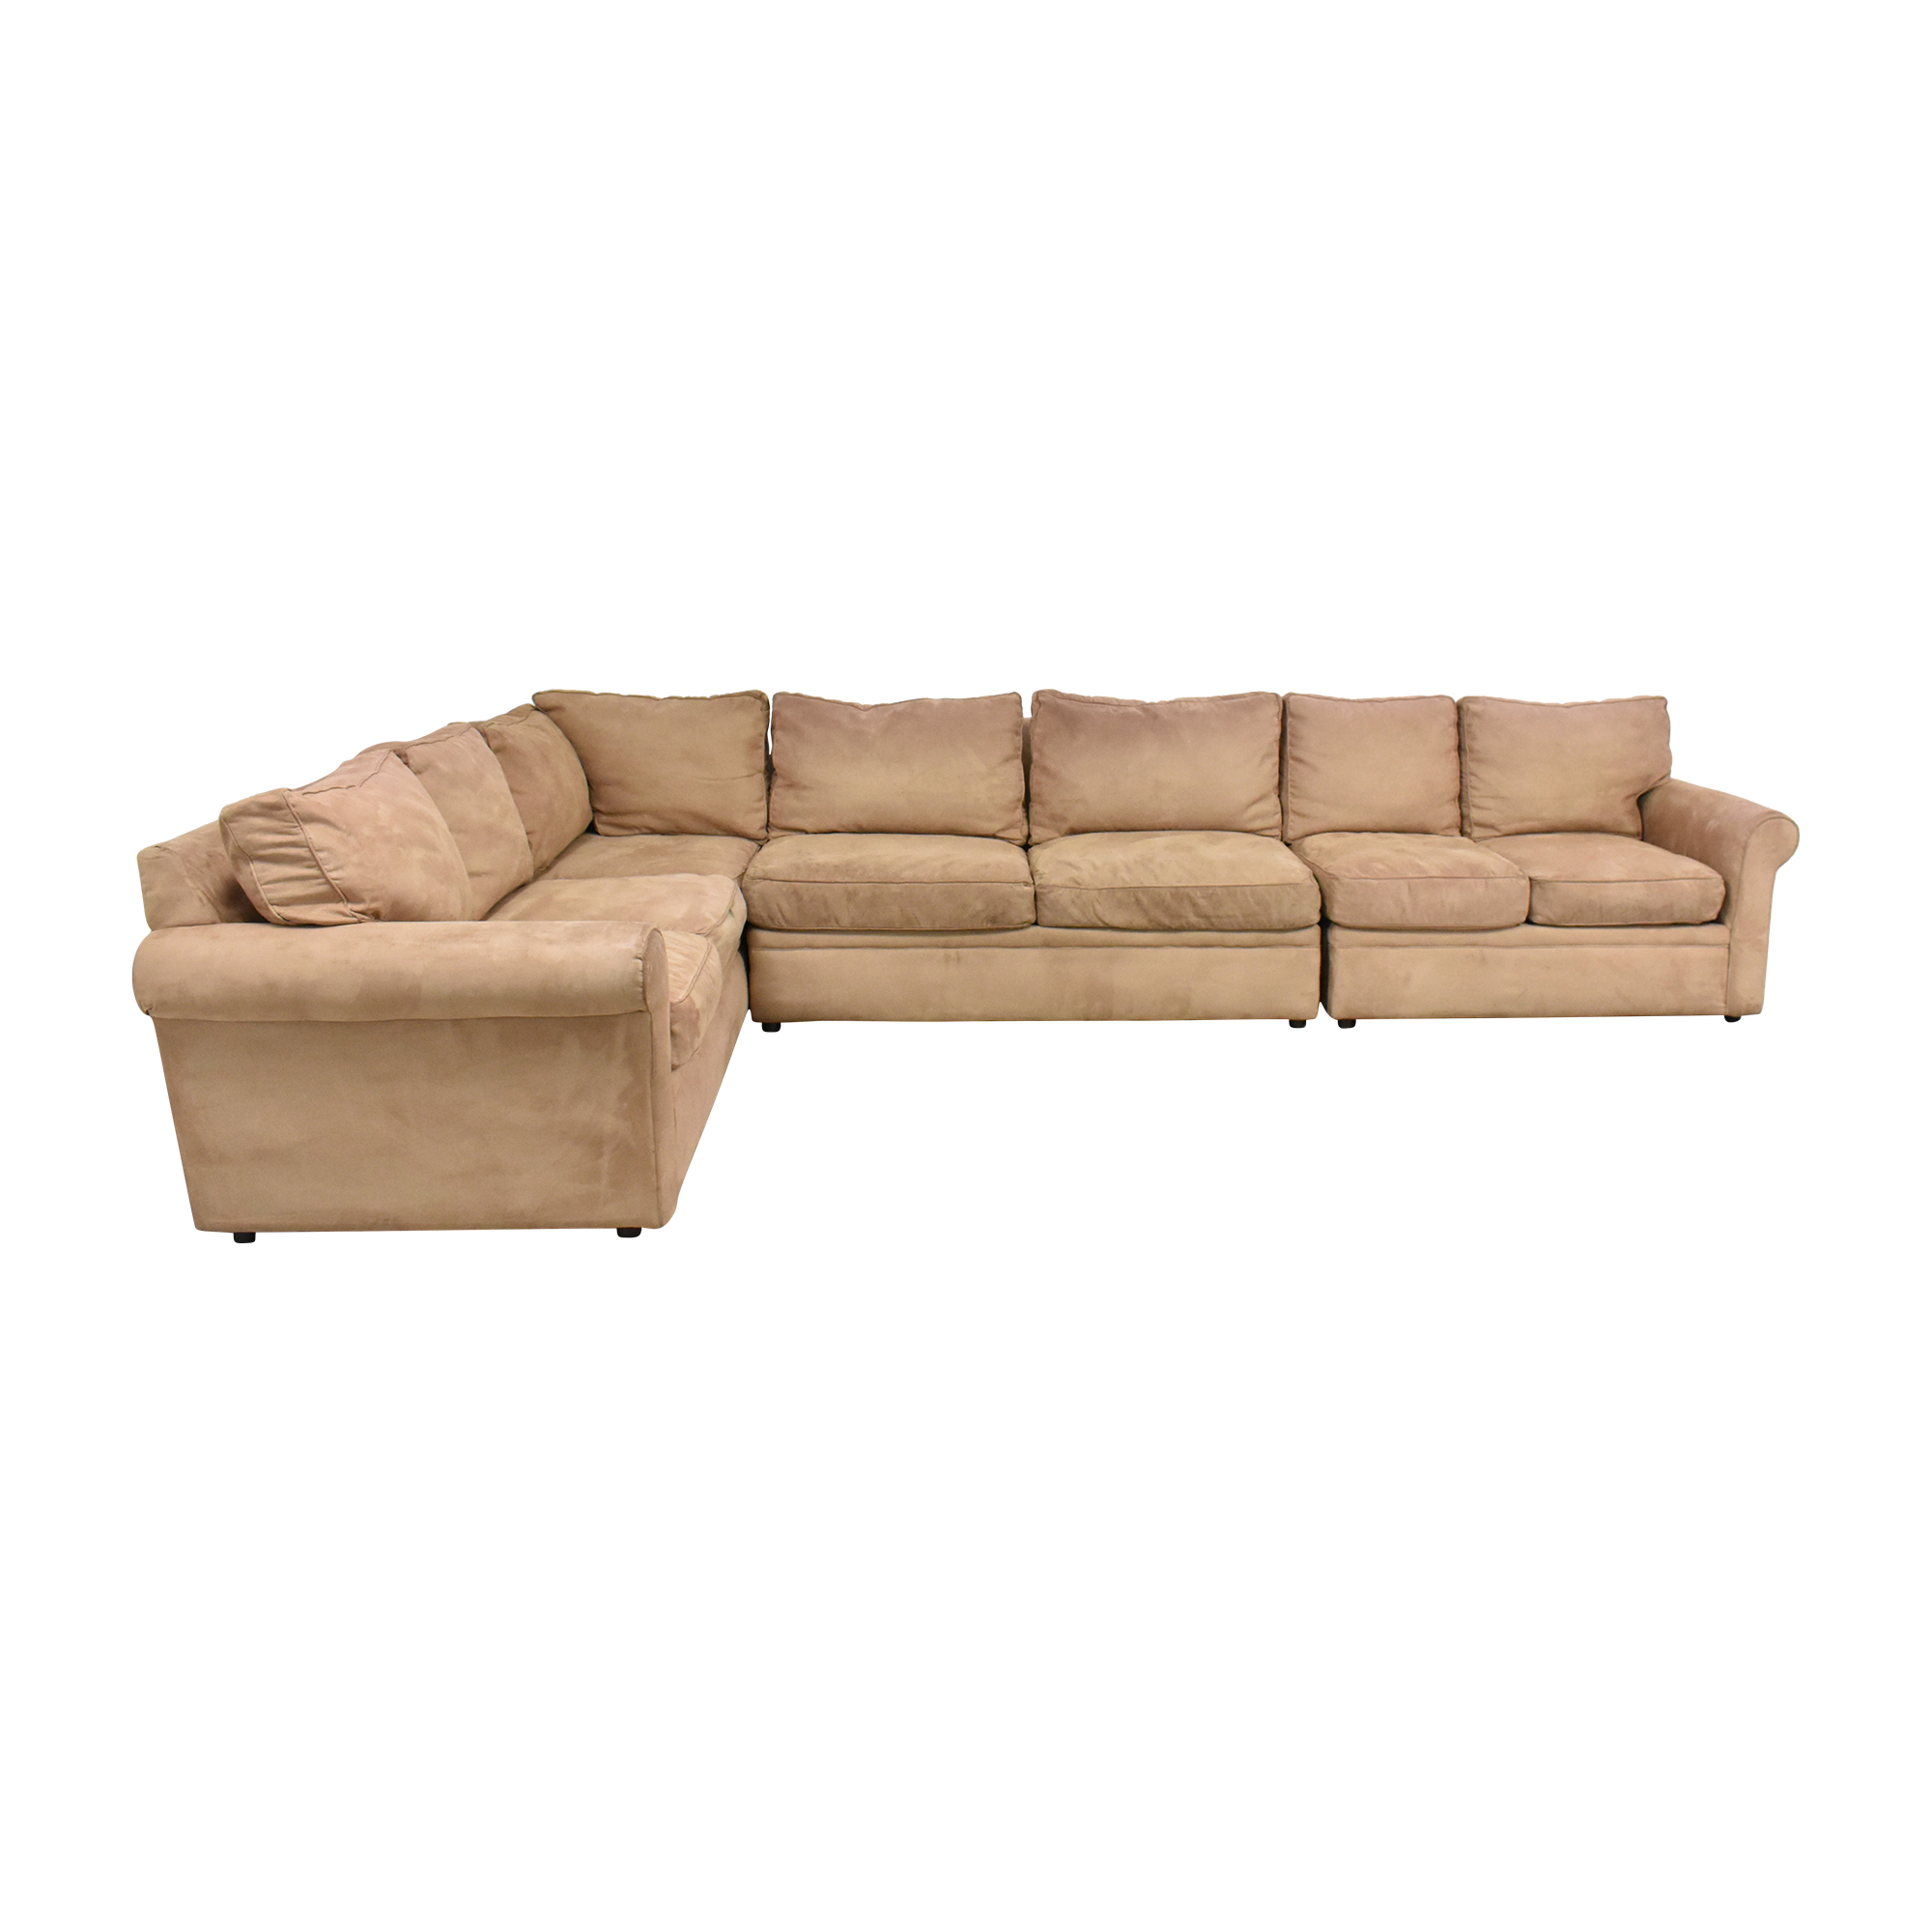 Rowe Furniture Rowe Furniture Corner Sectional Sofa pa